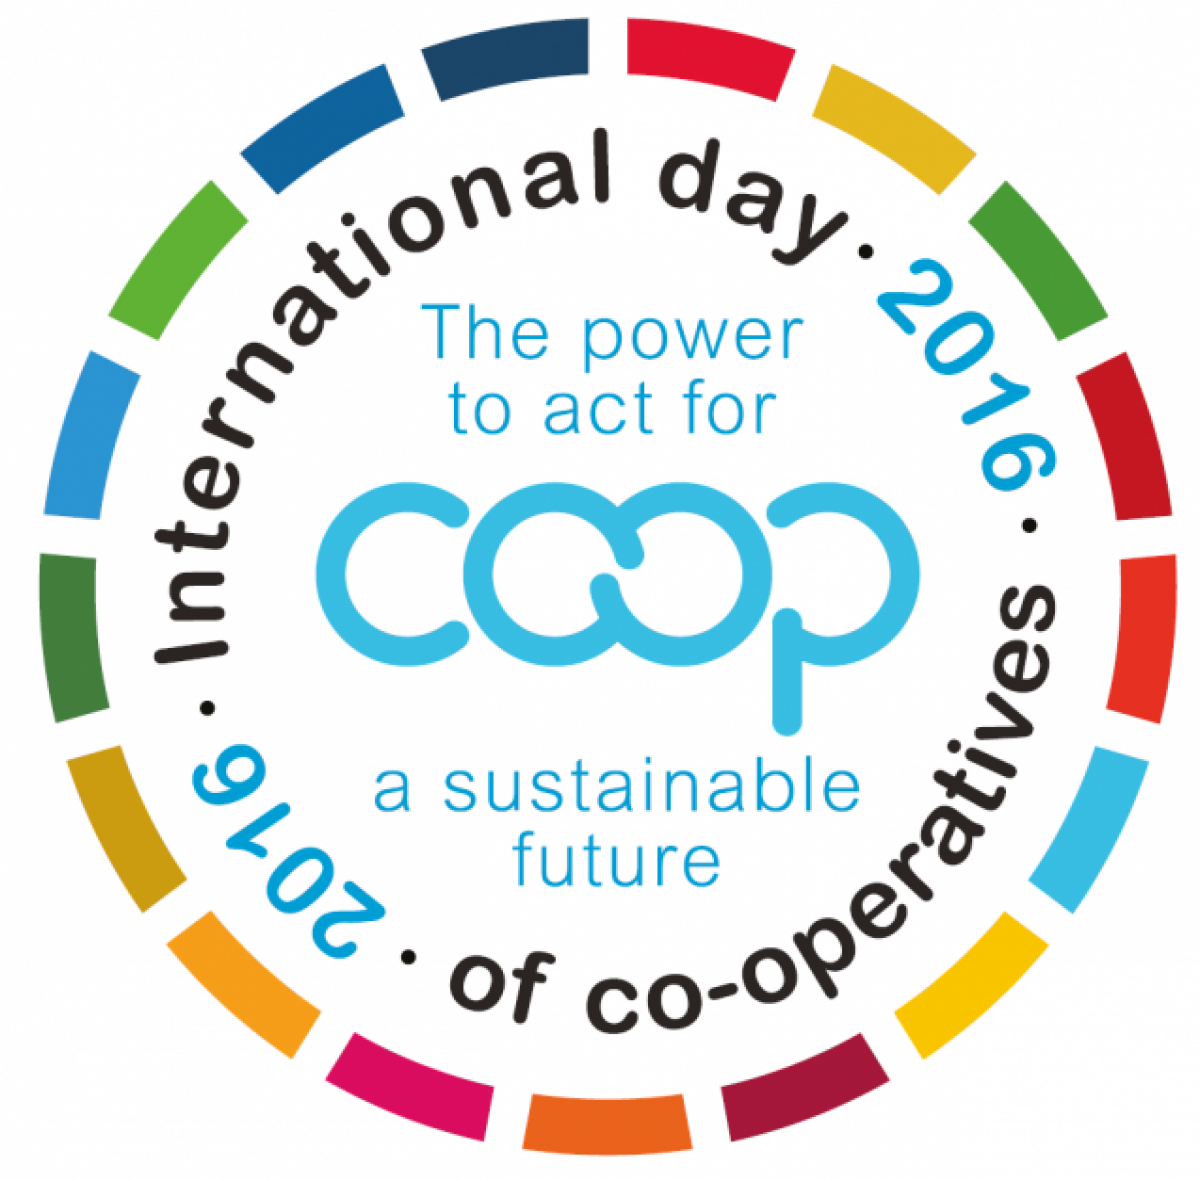 2016 International Day of Co-operatives